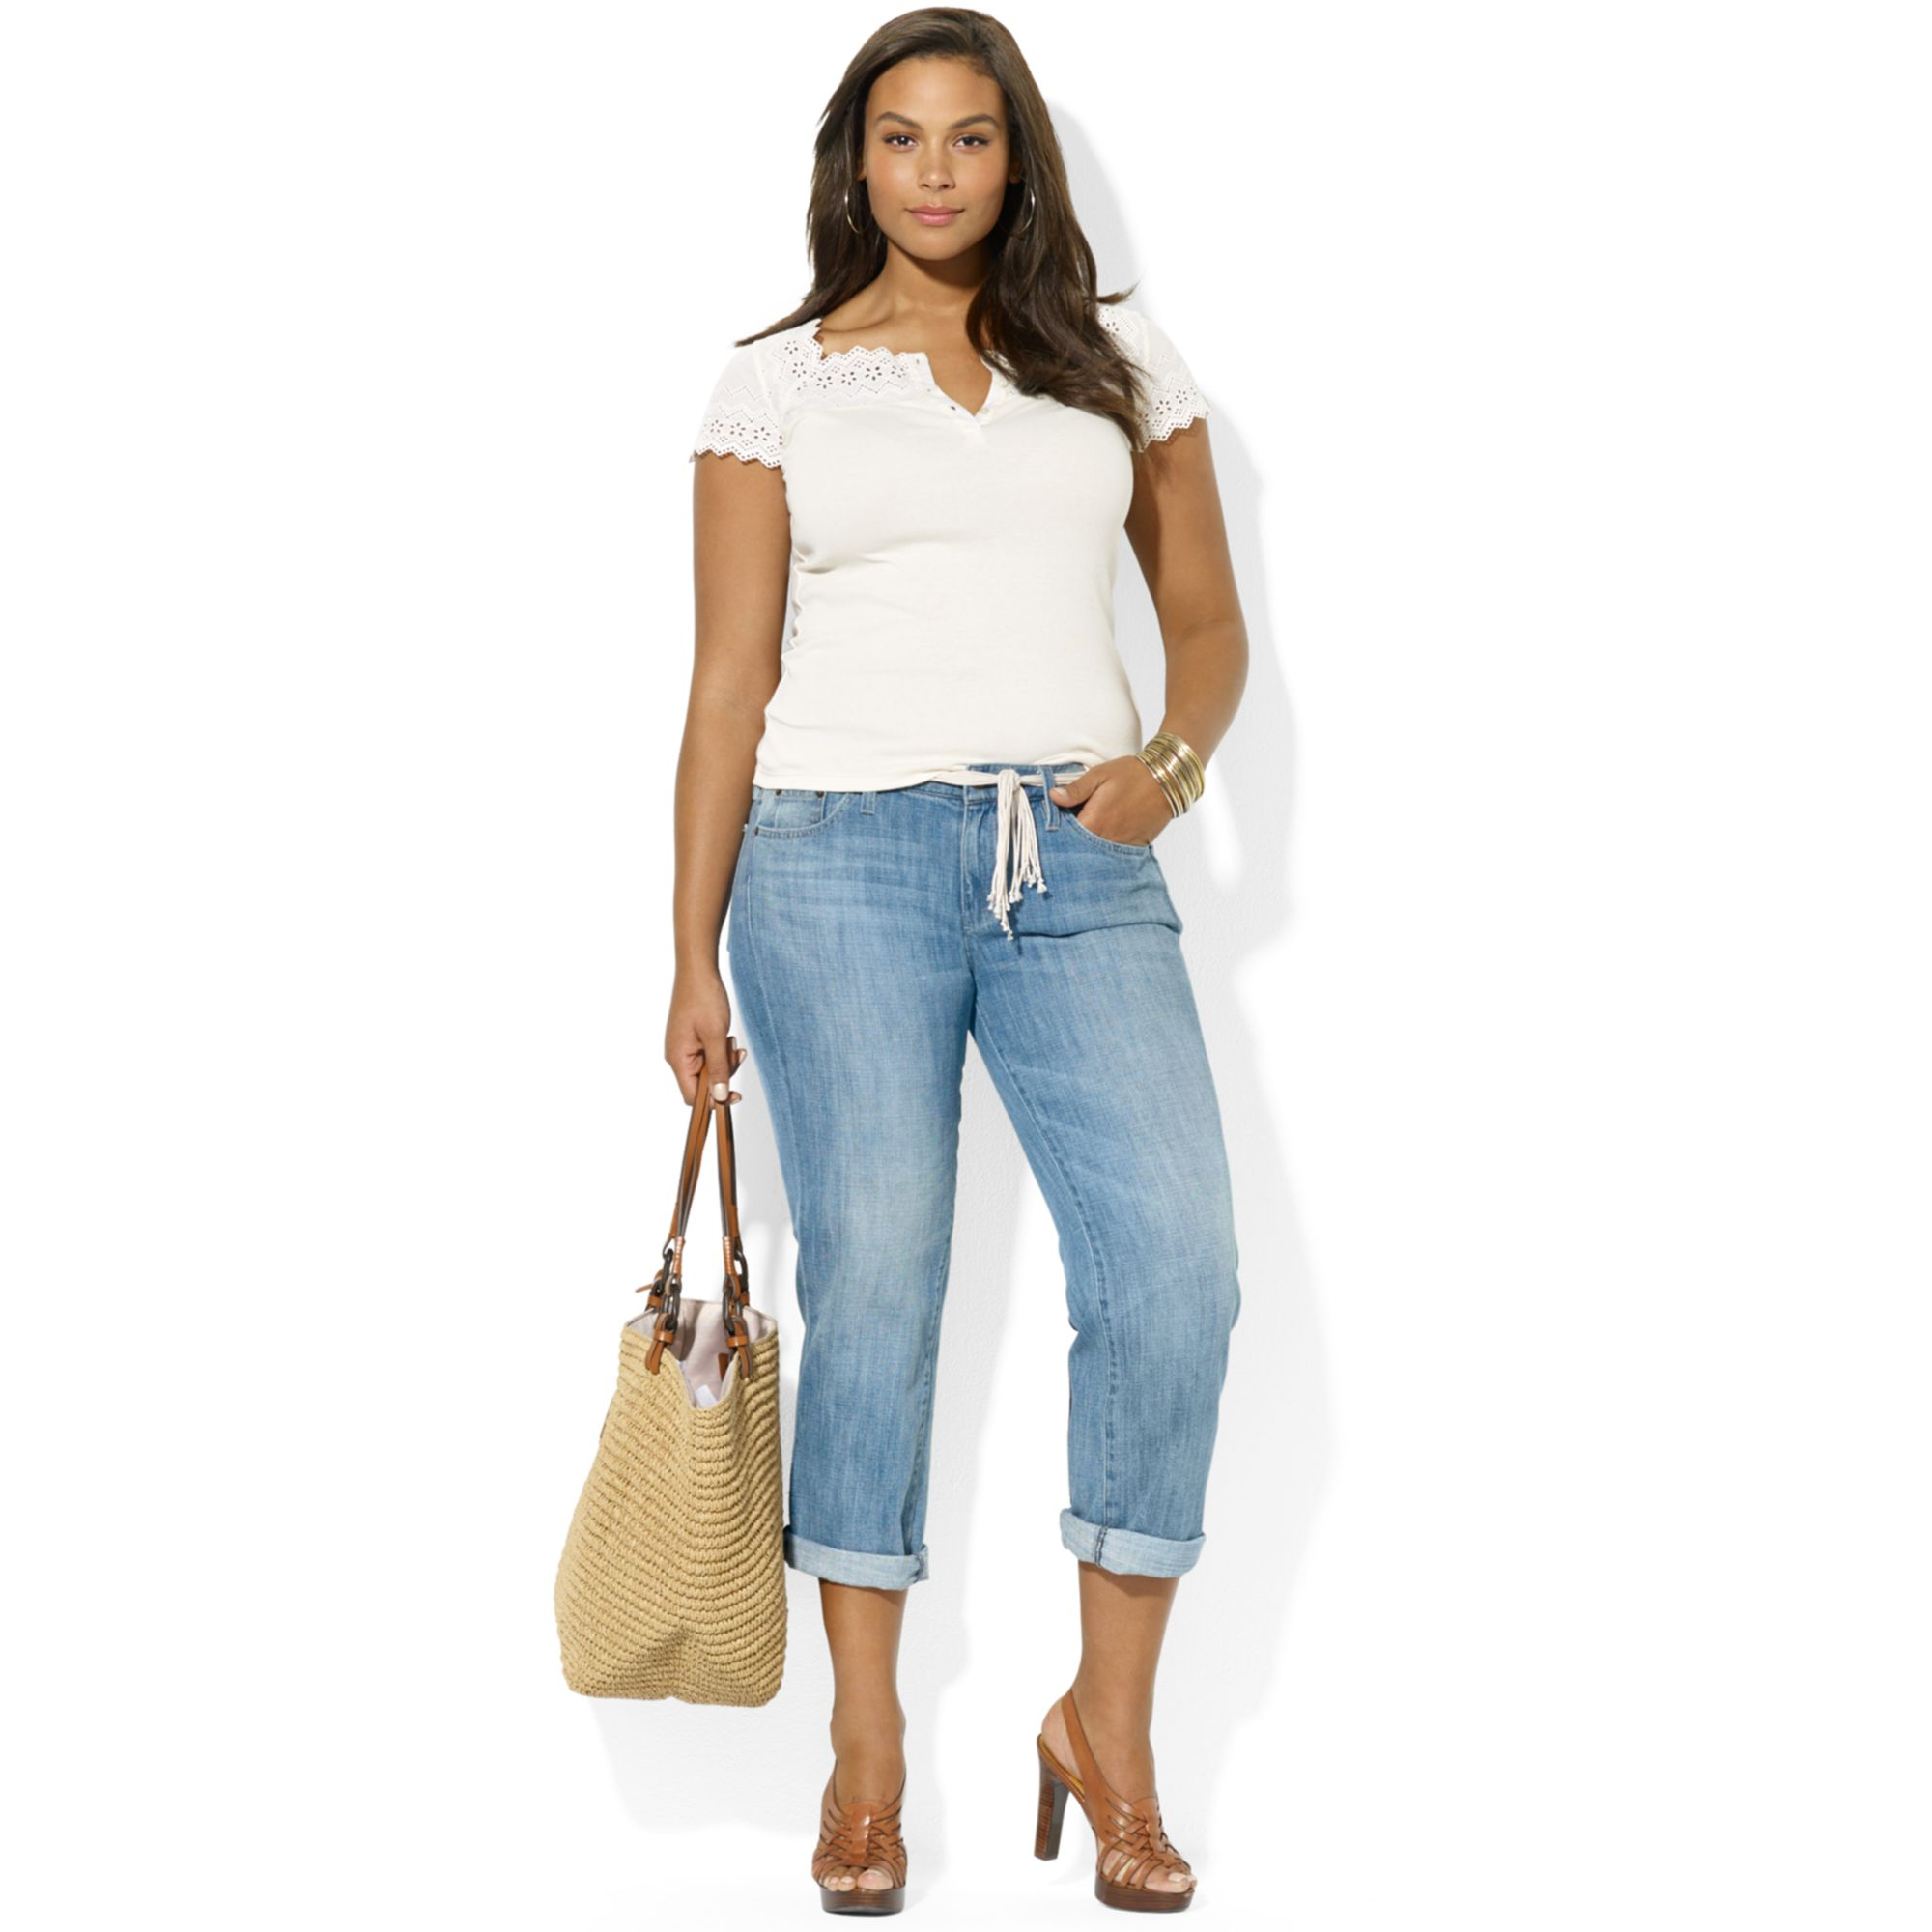 dbfb5f32157 Boyfriend Jeans For Plus Size Women